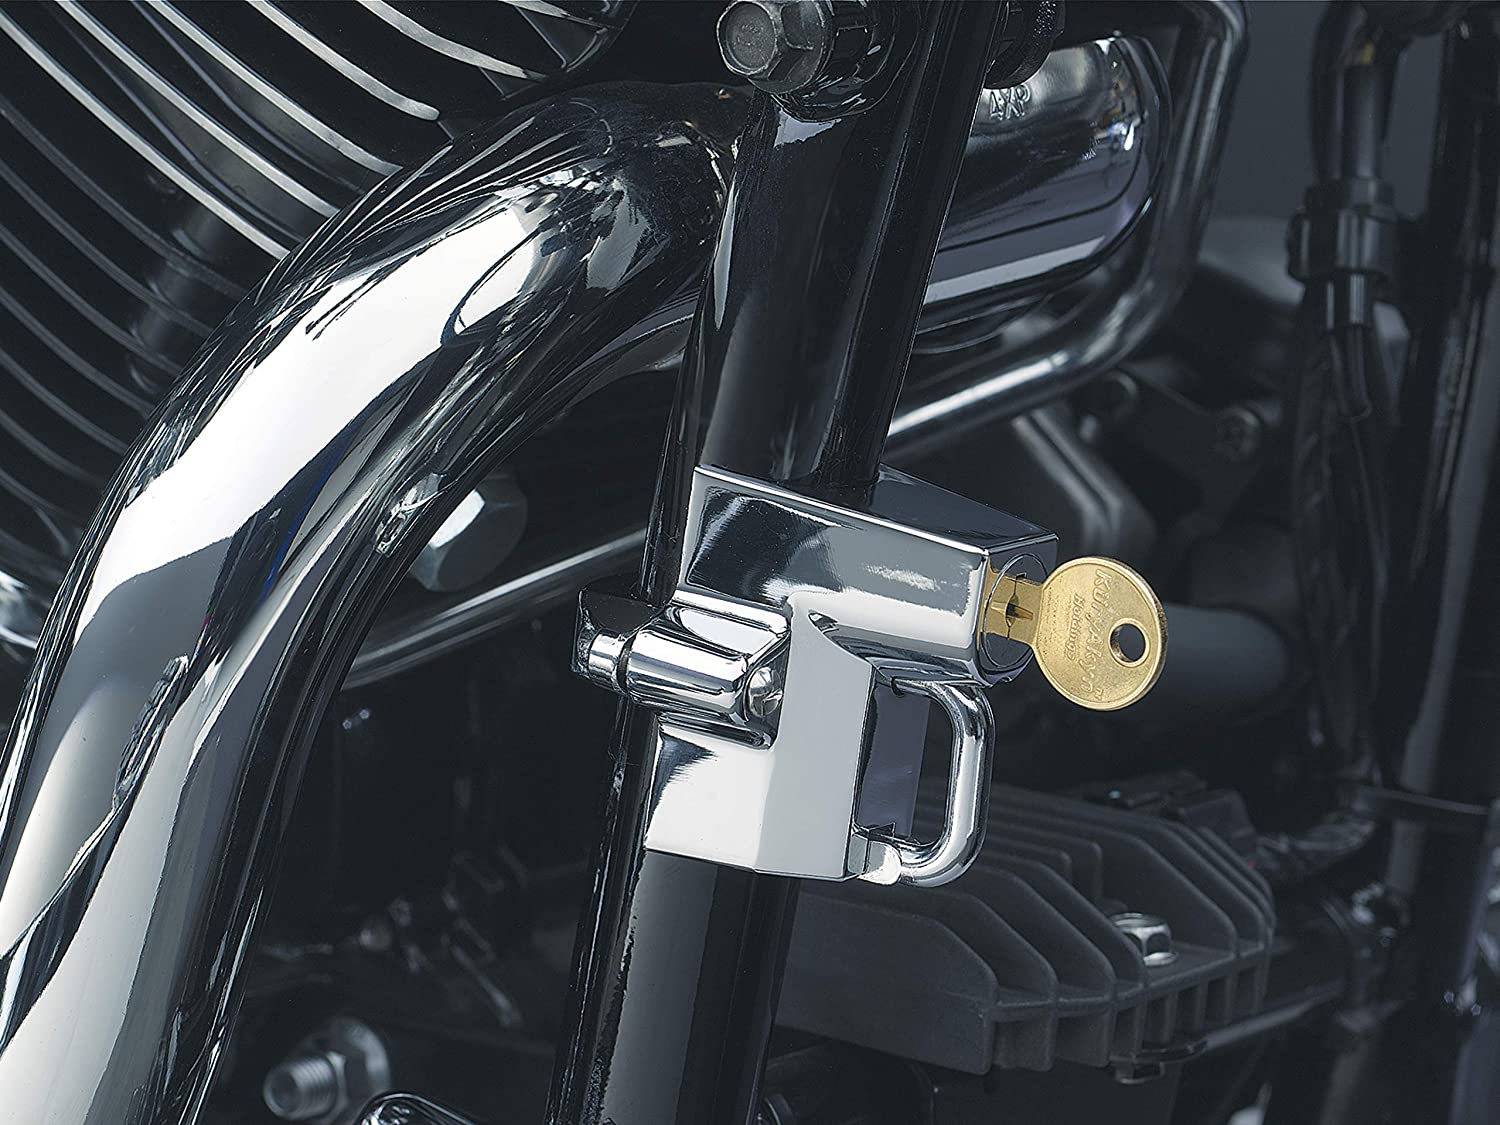 Universal Fit for Motorcycles with 7//8 to 1-1//4 Diameter Frame Tubes Kuryakyn 4220 Motorcycle Accessory Chrome Tamper-Proof Helmet Security Lock